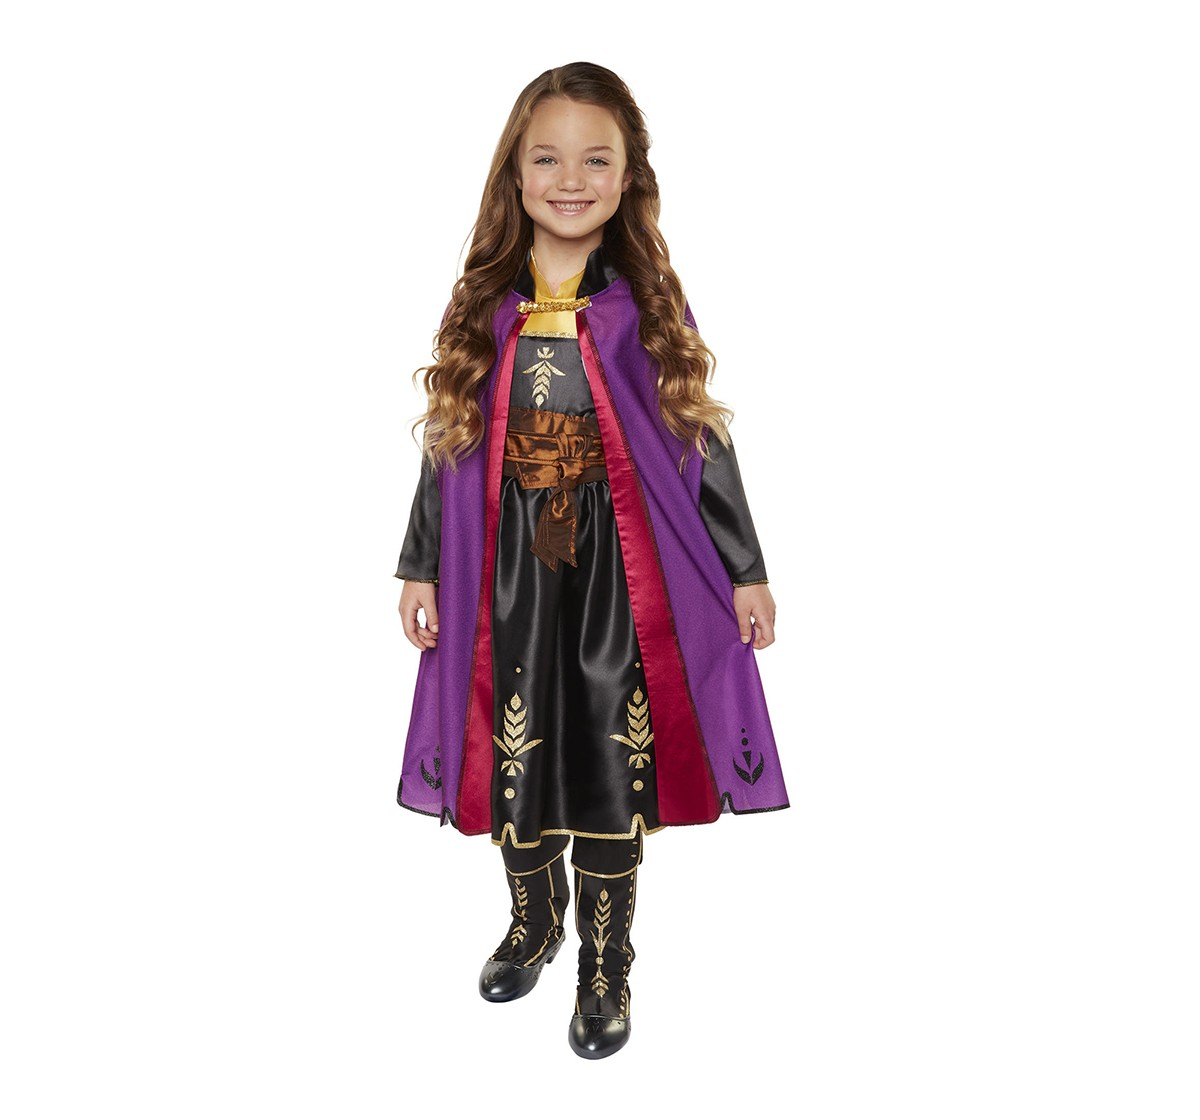 Disney Frozen 2 Non-Feature Travel Dress Assorted Girls Accessories for Girls age 3Y+